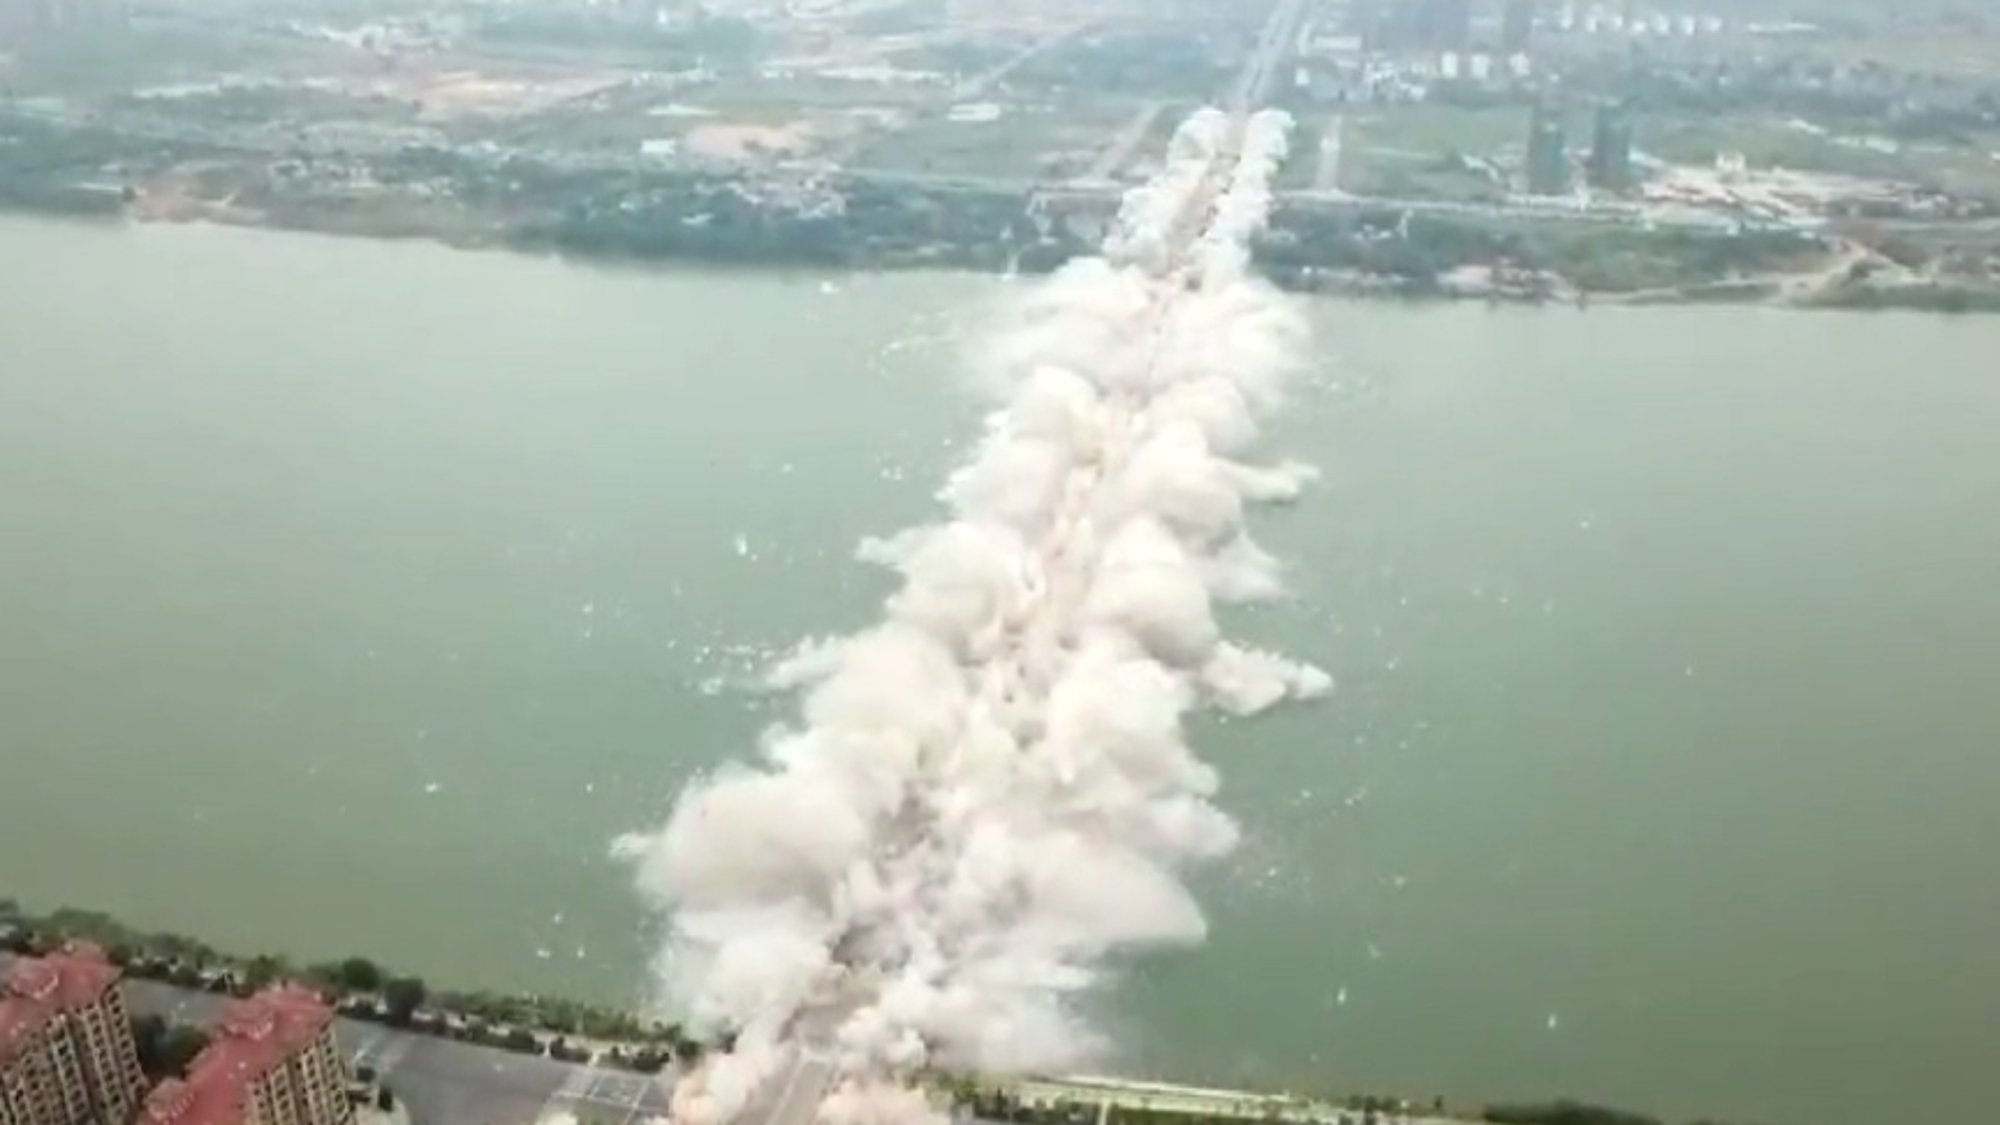 Pic shows: The moment of bridge demolition Thousands watched as engineers blew up a 5,000-foot bridge which has become obsolete due to population demands after just 23 years of use. The busy multi-lane bridge spanning the Gan River - known in Chinese as ???Ganjiang??? - was sealed off and residents asked to steer clear as demolition works took place at precisely 10:18am on 28th September. The Ji'an Ganjiang Bridge, in East China's Jiangxi province, was rigged with several tonnes of explosives on its four main columns and 61 piers. All 1,577 metres (5,173 feet) of the bridge, which was roughly 50 feet wide, was to be brought down simultaneously into the waters of the Gan River. Witnesses recorded spectacular footage of the countdown and the explosion that followed, with videos showing TNT blowing up at the same time all along the bridge. Residents were standing so far away that the cloud of smoke and debris was spotted first before sound waves from the blast reached their ears, the video shows. The 23-year-old bridge, for which officials approved the demolition job in June, was brought down in a matter of seconds. Construction for the Ji'an Ganjiang Bridge began on 23rd September 1993 and opened to traffic on 16th December 1995. It will make way for a taller, wider bridge, which will better serve a Ji'an population currently standing at 4.8 million inhabitants, 530,000 of whom live in the metropolitan areas. Work for the new bridge will begin in January next year and is expected to open to traffic in June 2021.